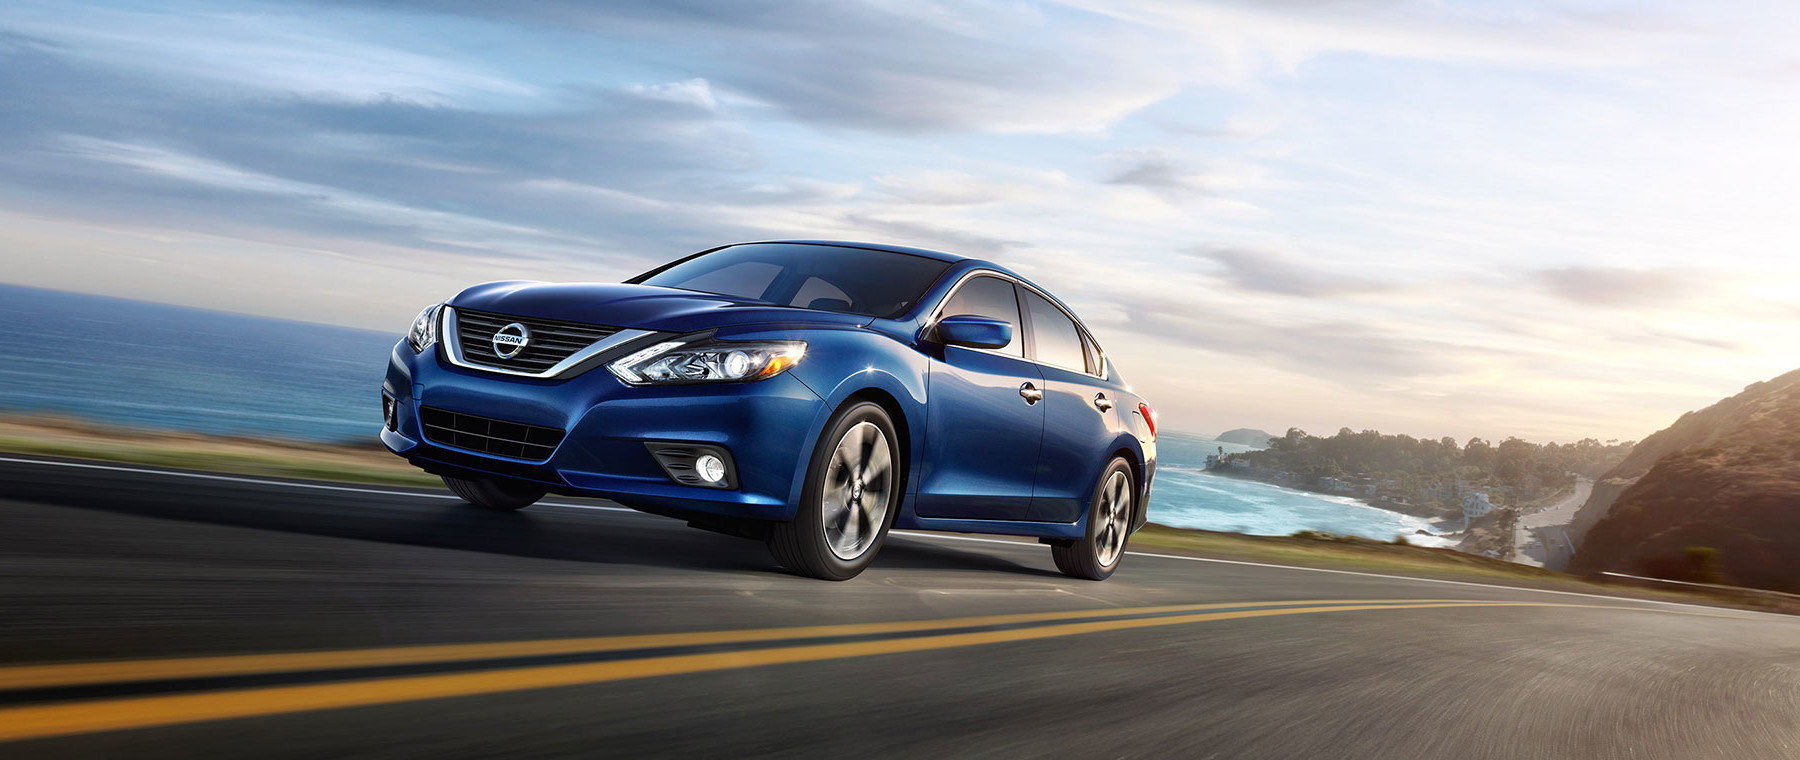 Lease deals on 2018 altima